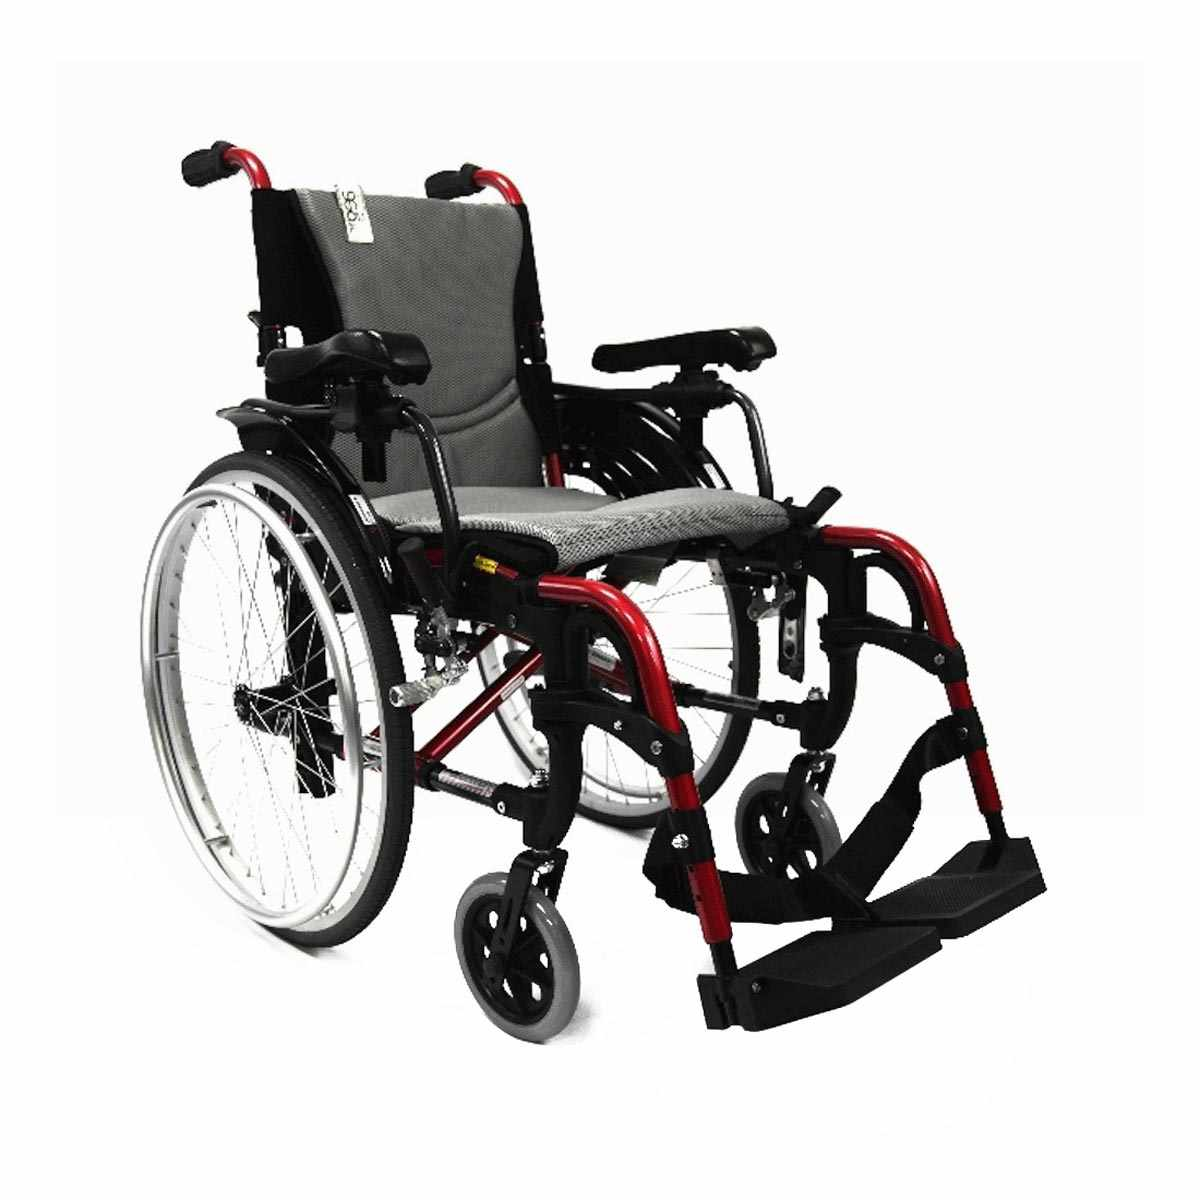 Karman healthcare S-ERGO 305 adjustable ergonomic wheelchair